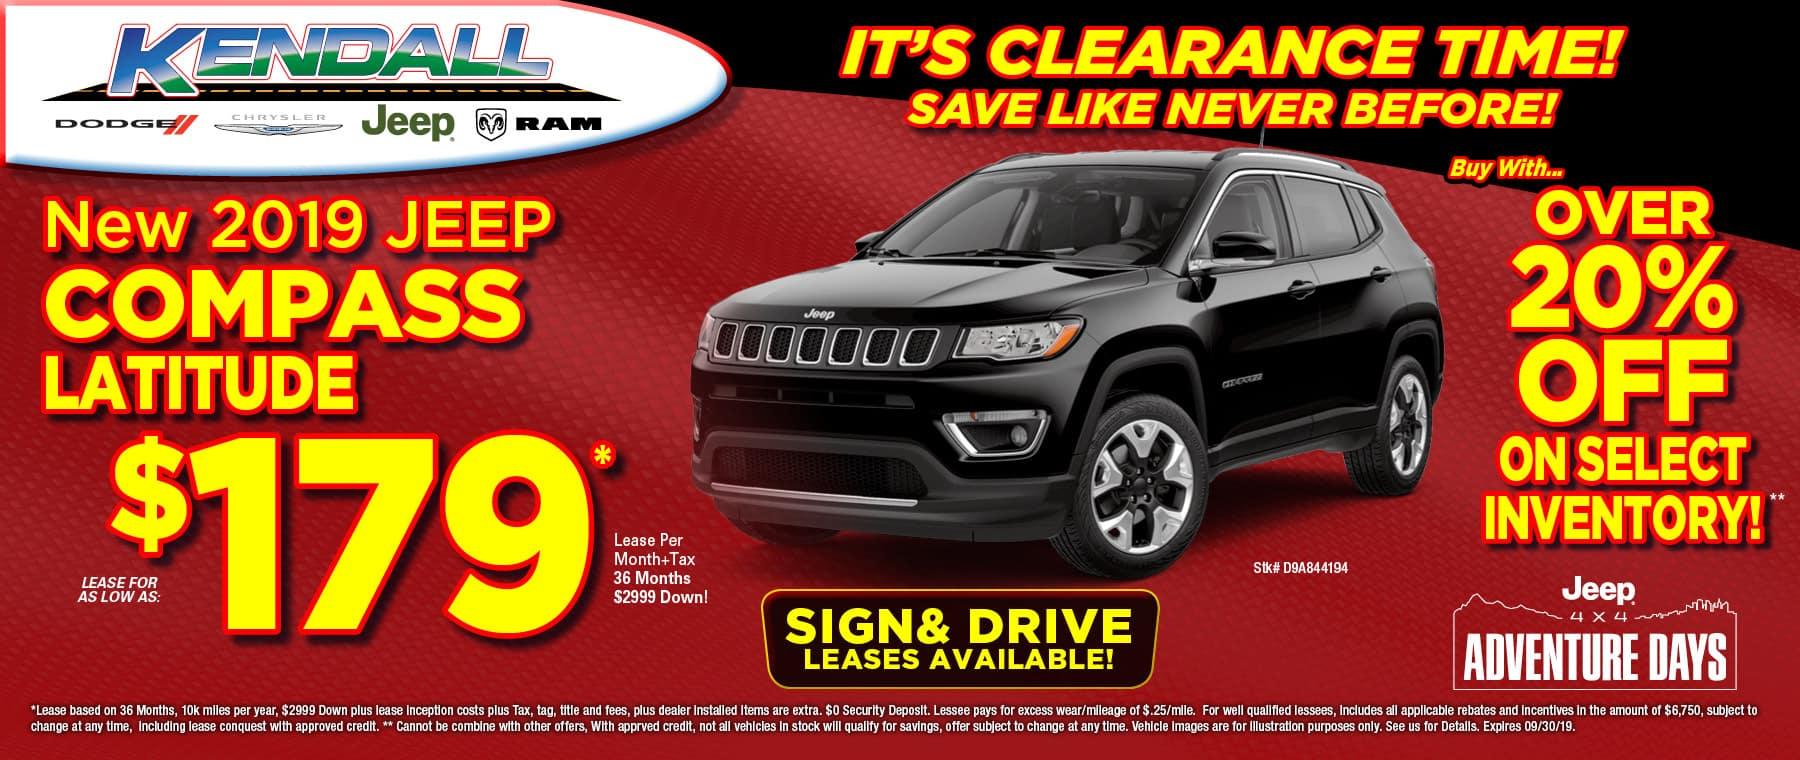 Kendall Dodge Chrysler Jeep Ram | Chrysler, Dodge, Jeep, Ram